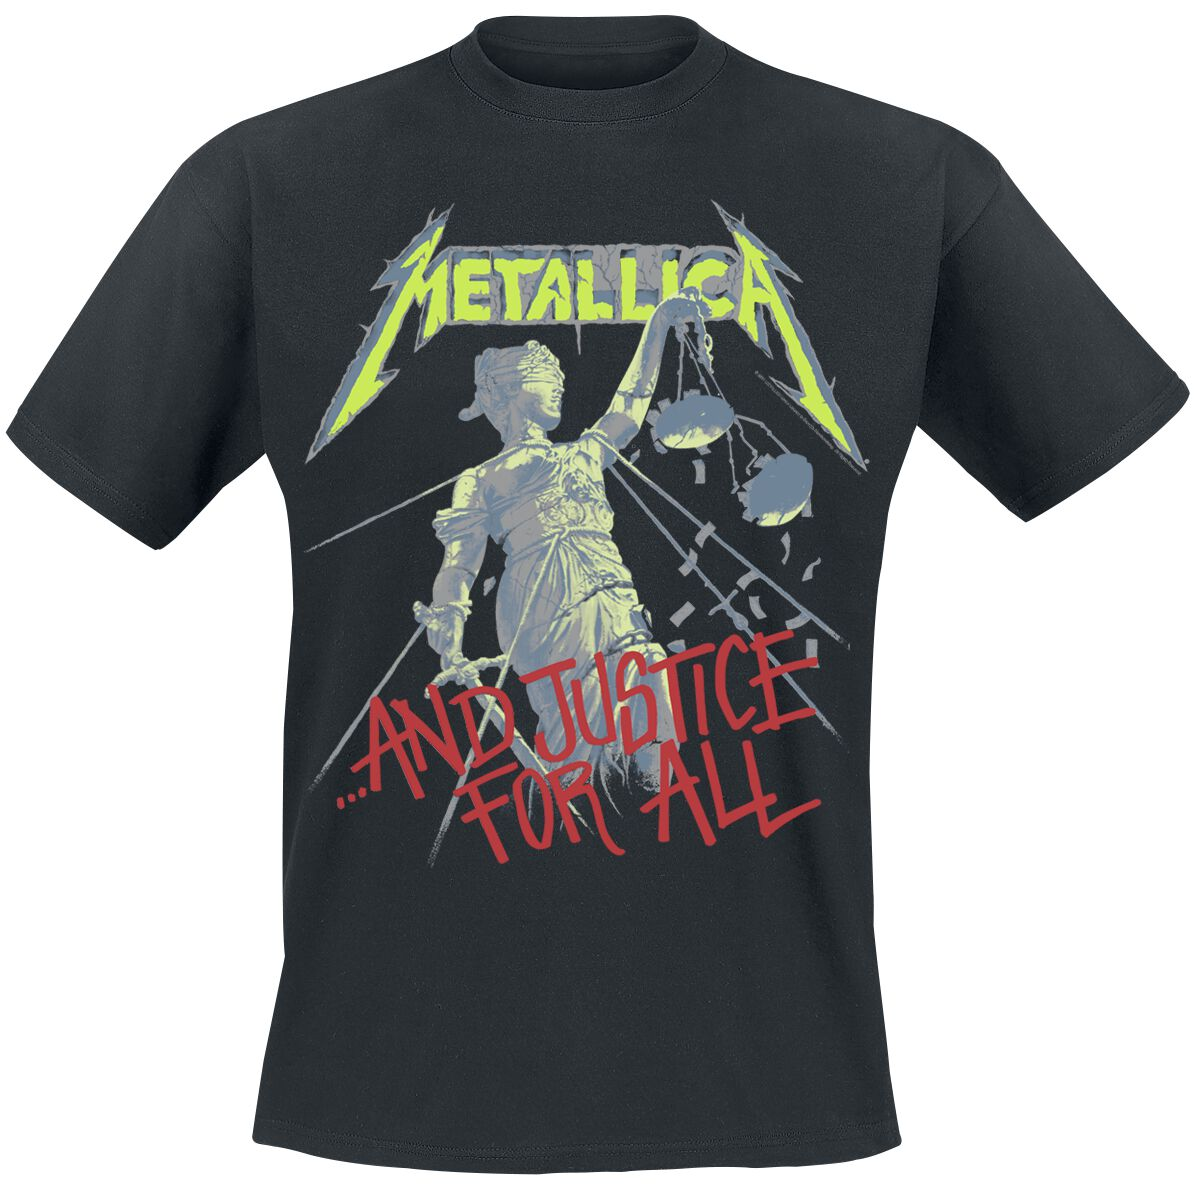 Image of   Metallica Justice Tracks T-Shirt sort